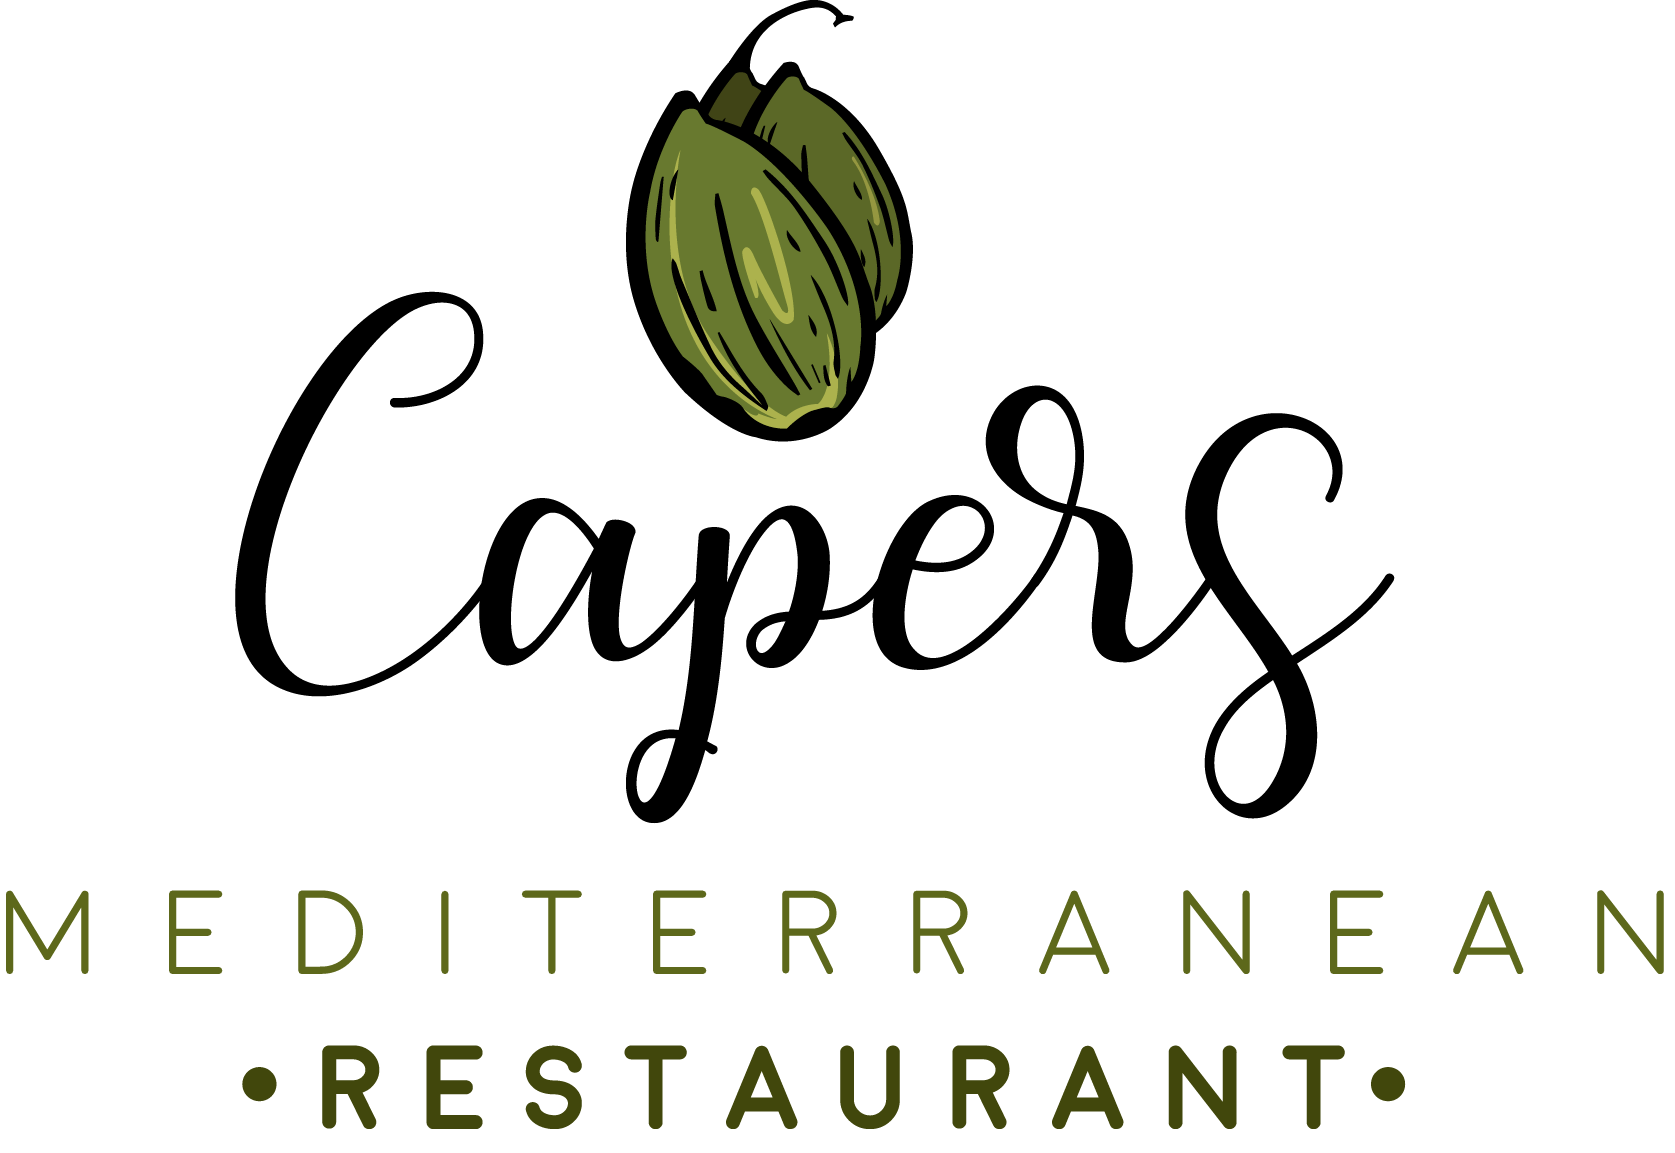 Capers Restaurant Capers Restaurant Port Chester Ny